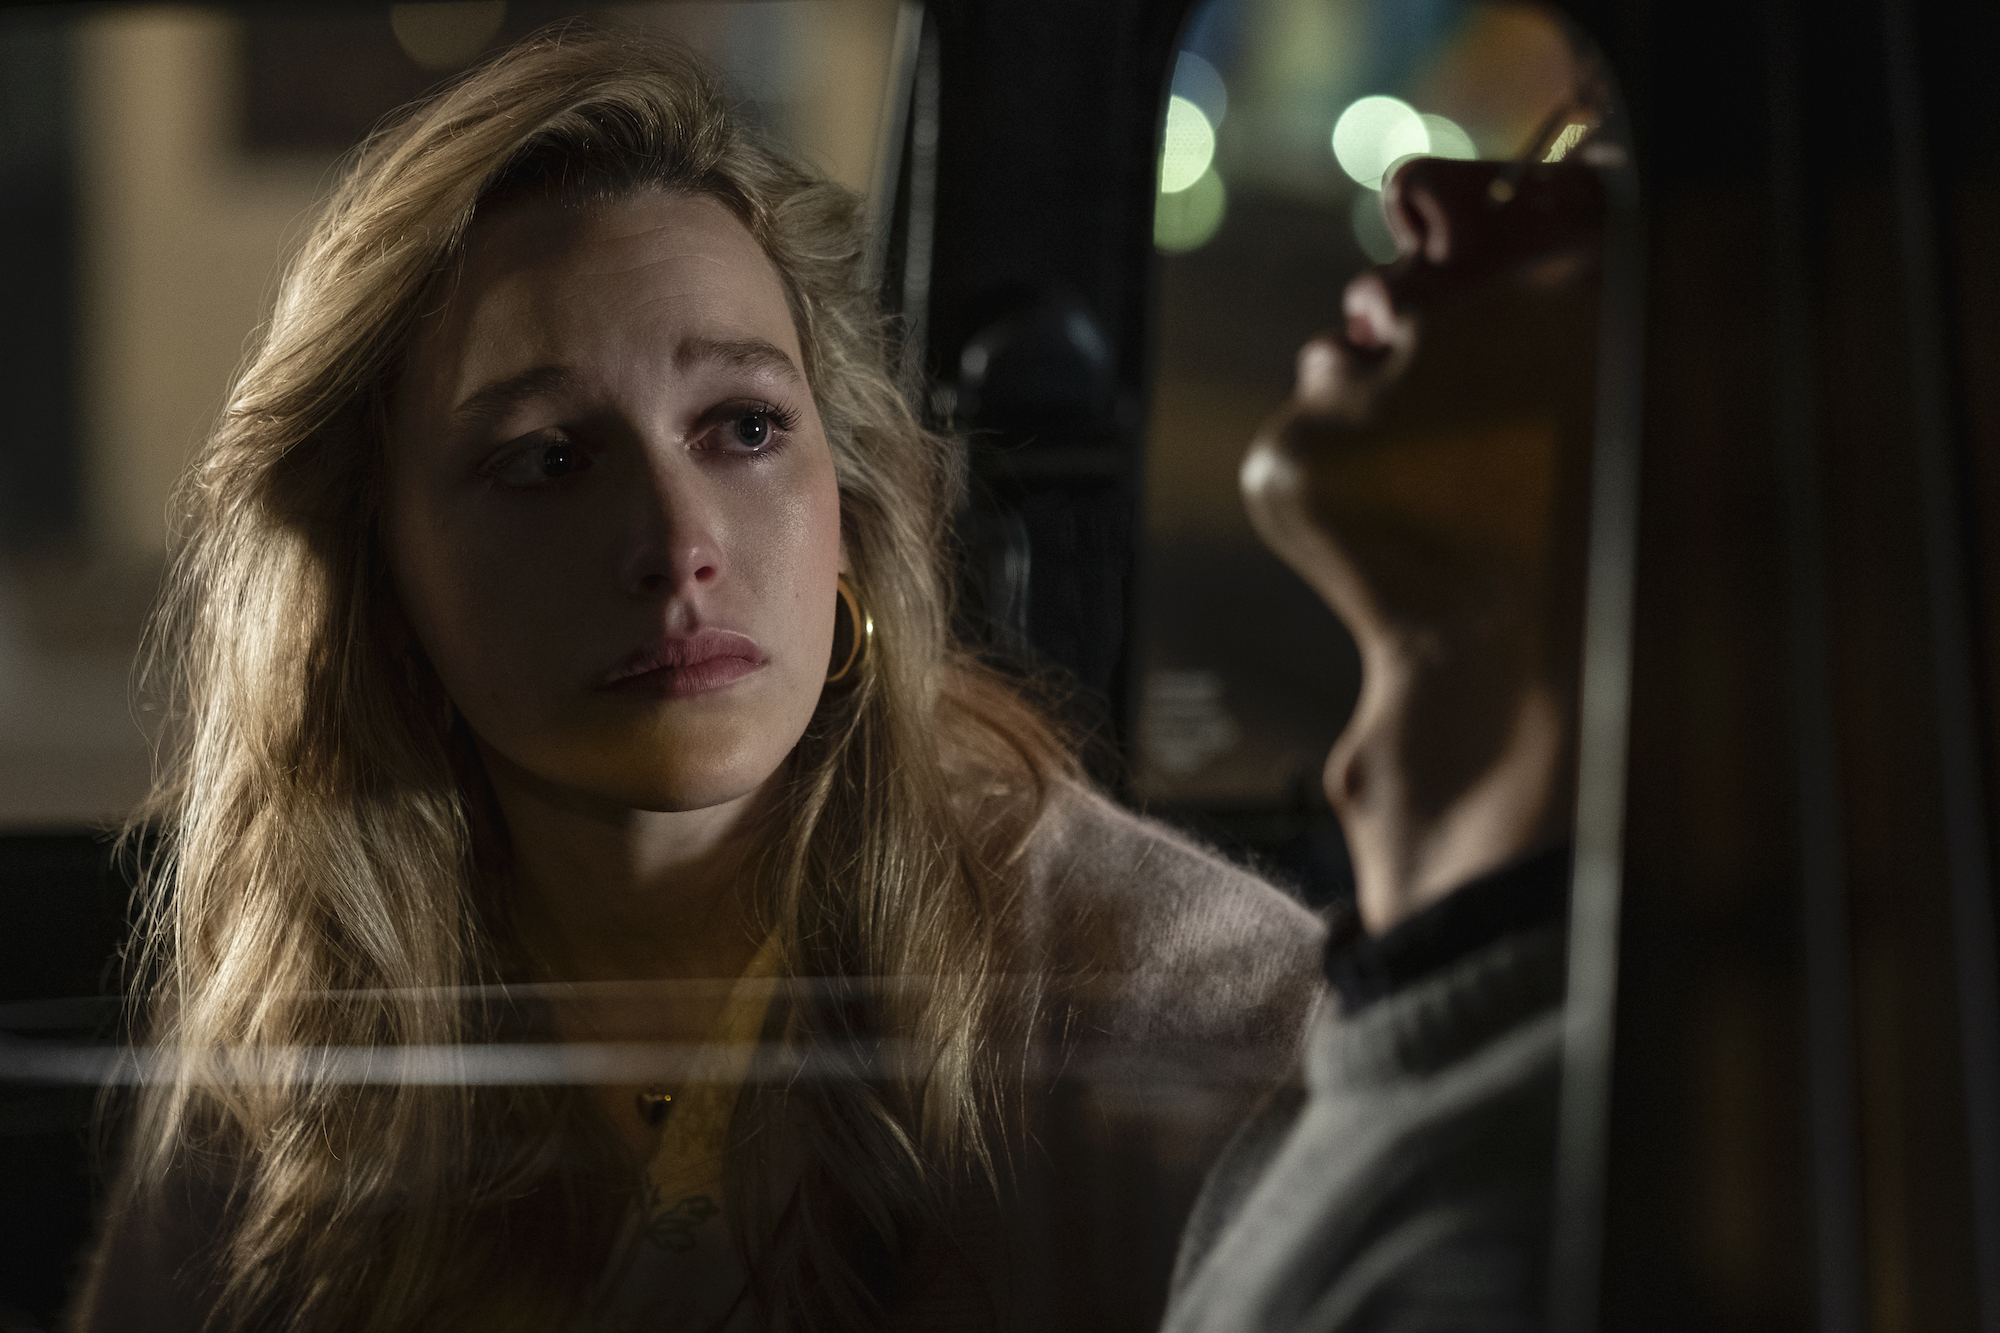 Dani in the car with her now-ex-fiancé Eddie (Roby Attal) in 'THE HAUNTING OF BLY MANOR'